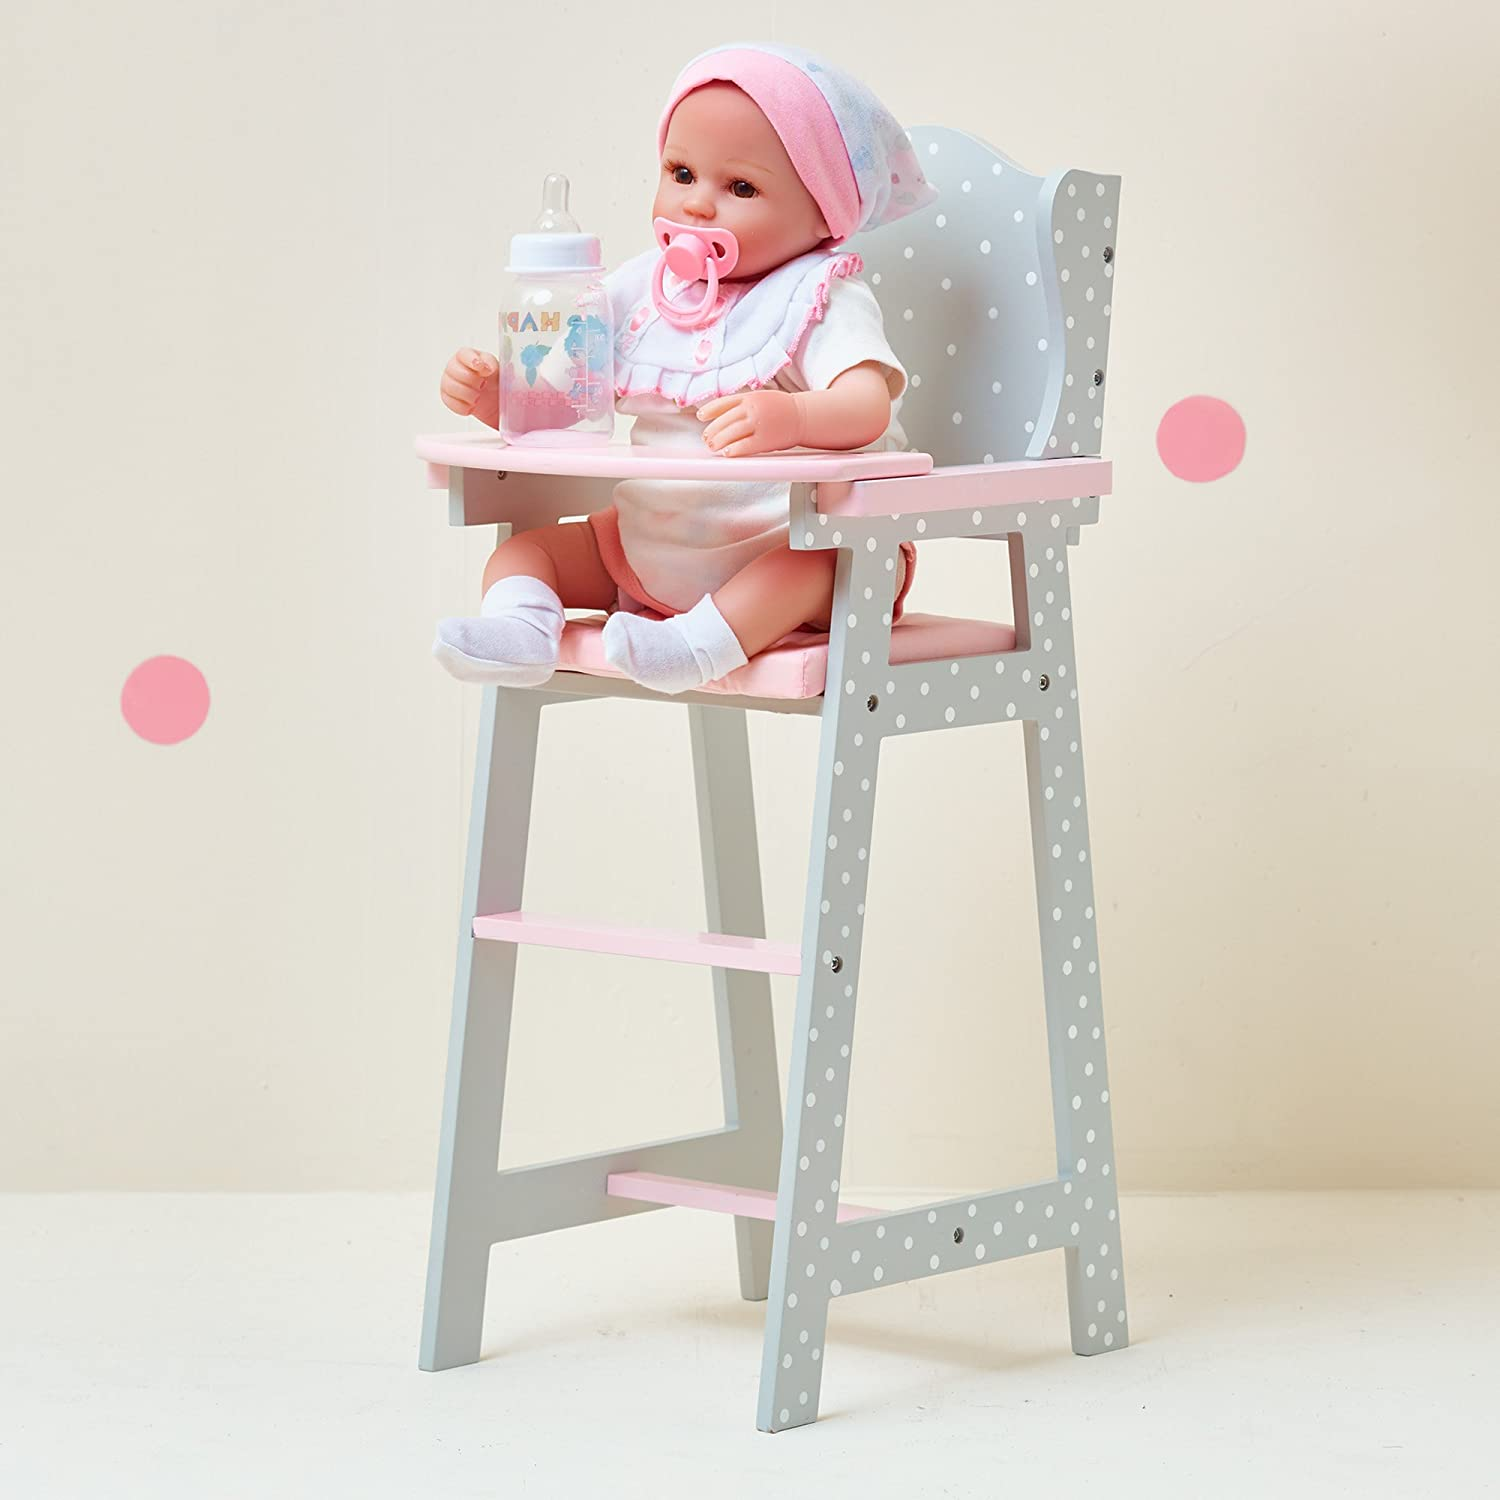 Olivia's Little World - Polka Baltimore Mall Dots Doll Chair Princess Baby High Rapid rise